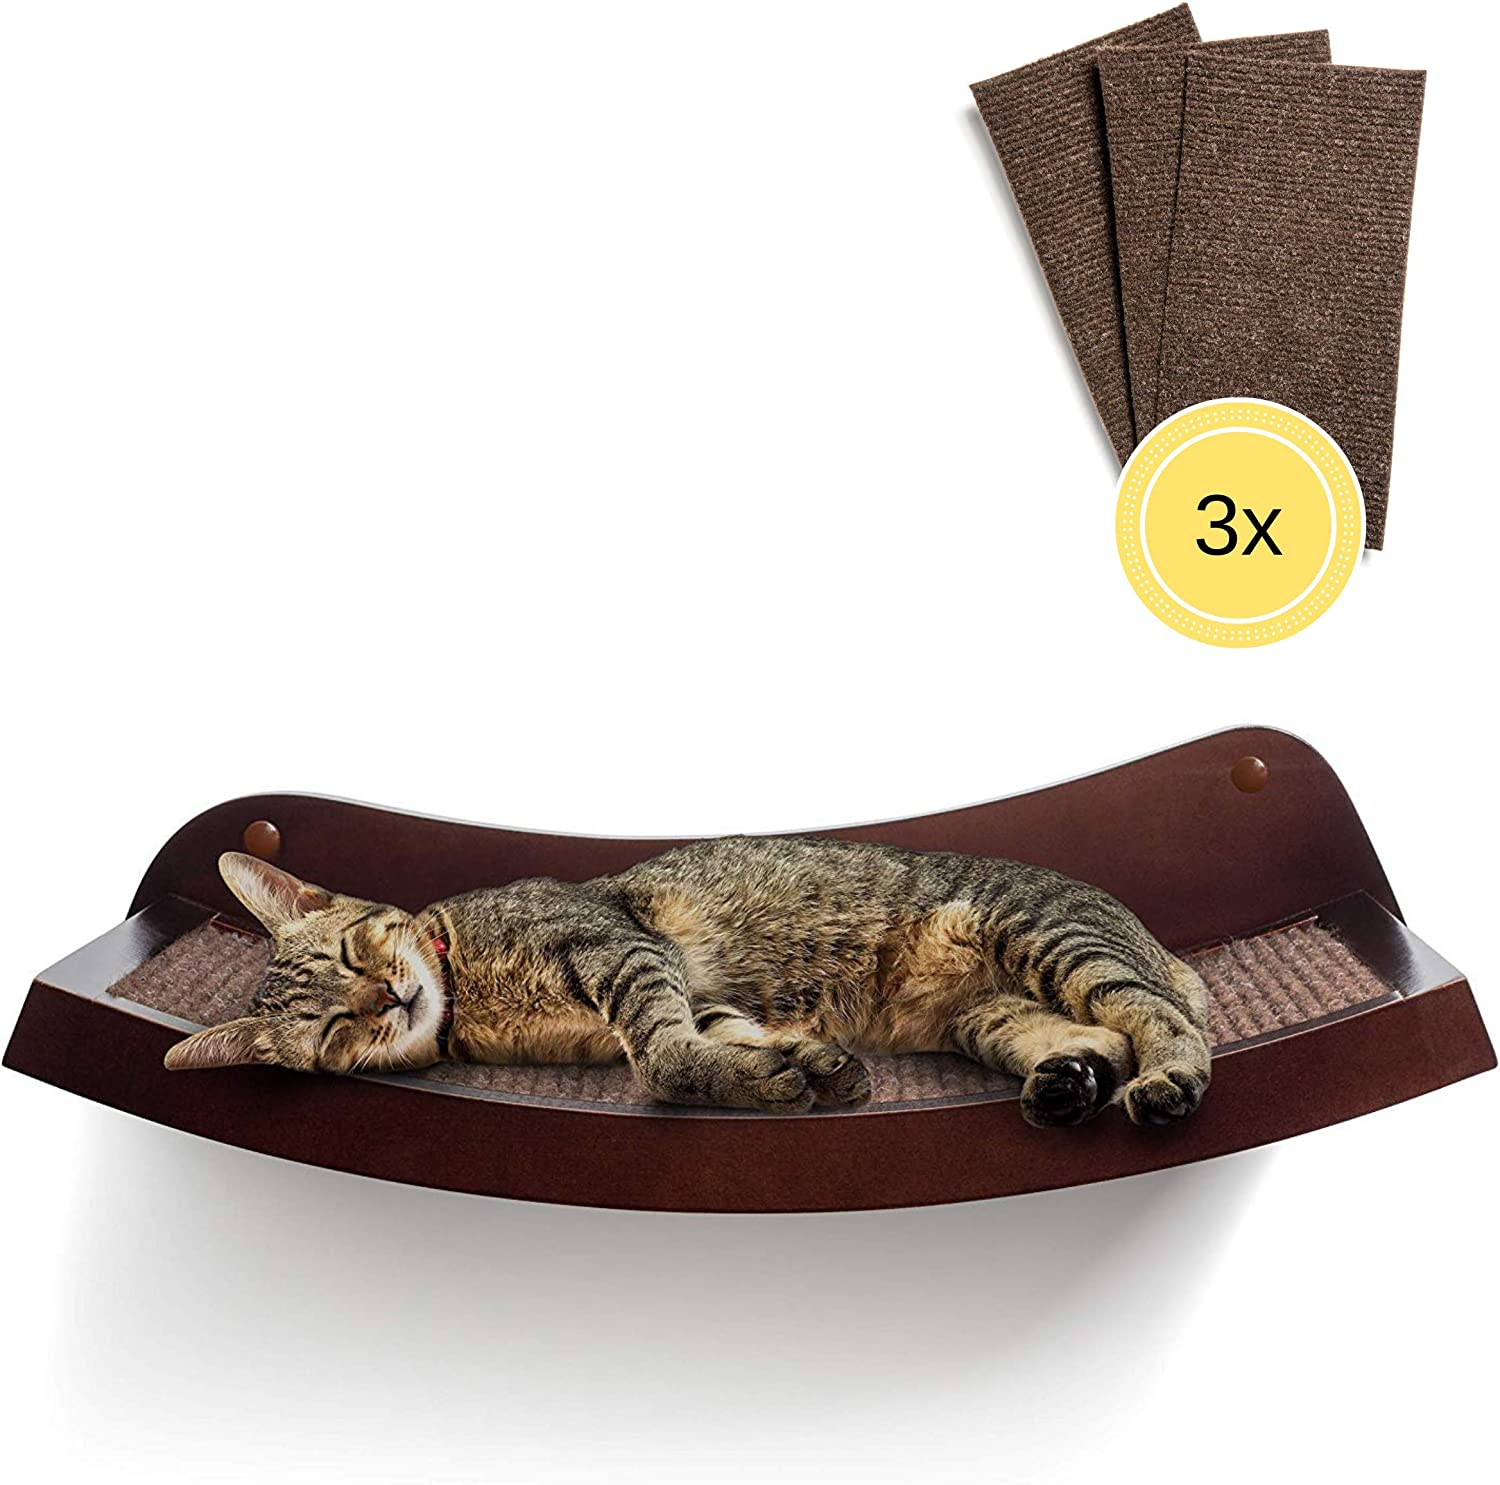 "HumaneGoods 19"" Deluxe Cat Wall Shelf - Wall-Mounted, Floating Perch with 3X Replaceable Scratch Pads for Adult Cats"